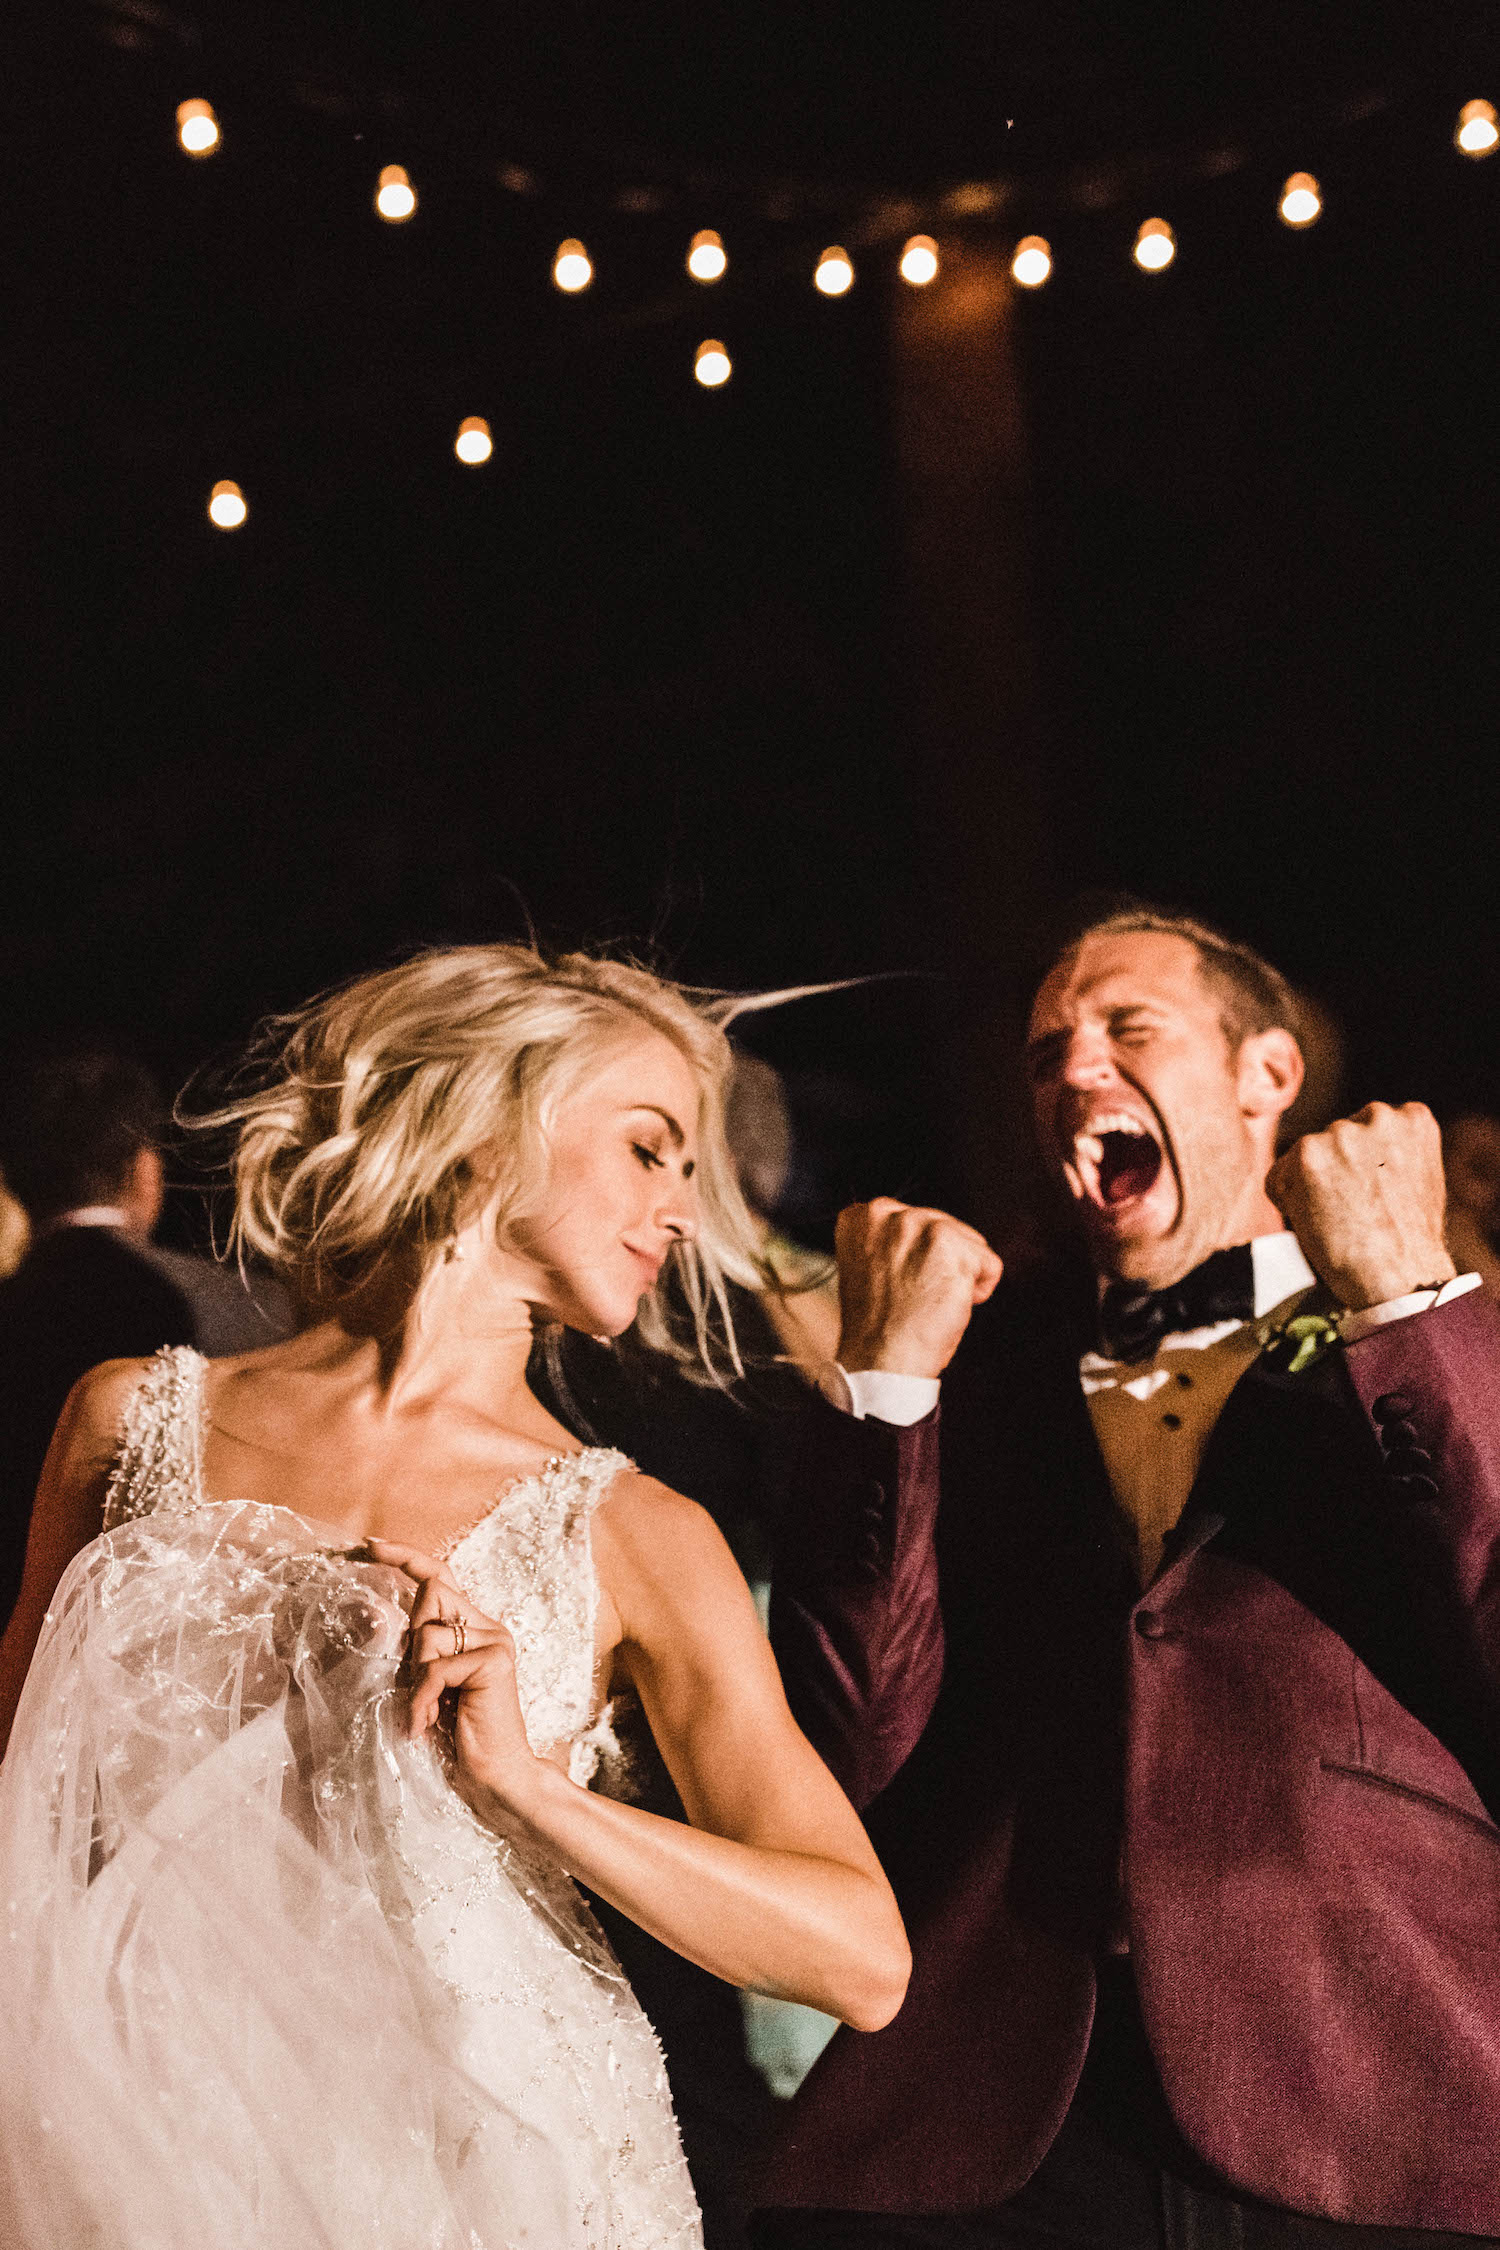 Julianne Hough and Brooks Laich Wedding - Wild Bloom Floral - Sarah Falugo Photography - Simply Troy Event Design 8.jpeg